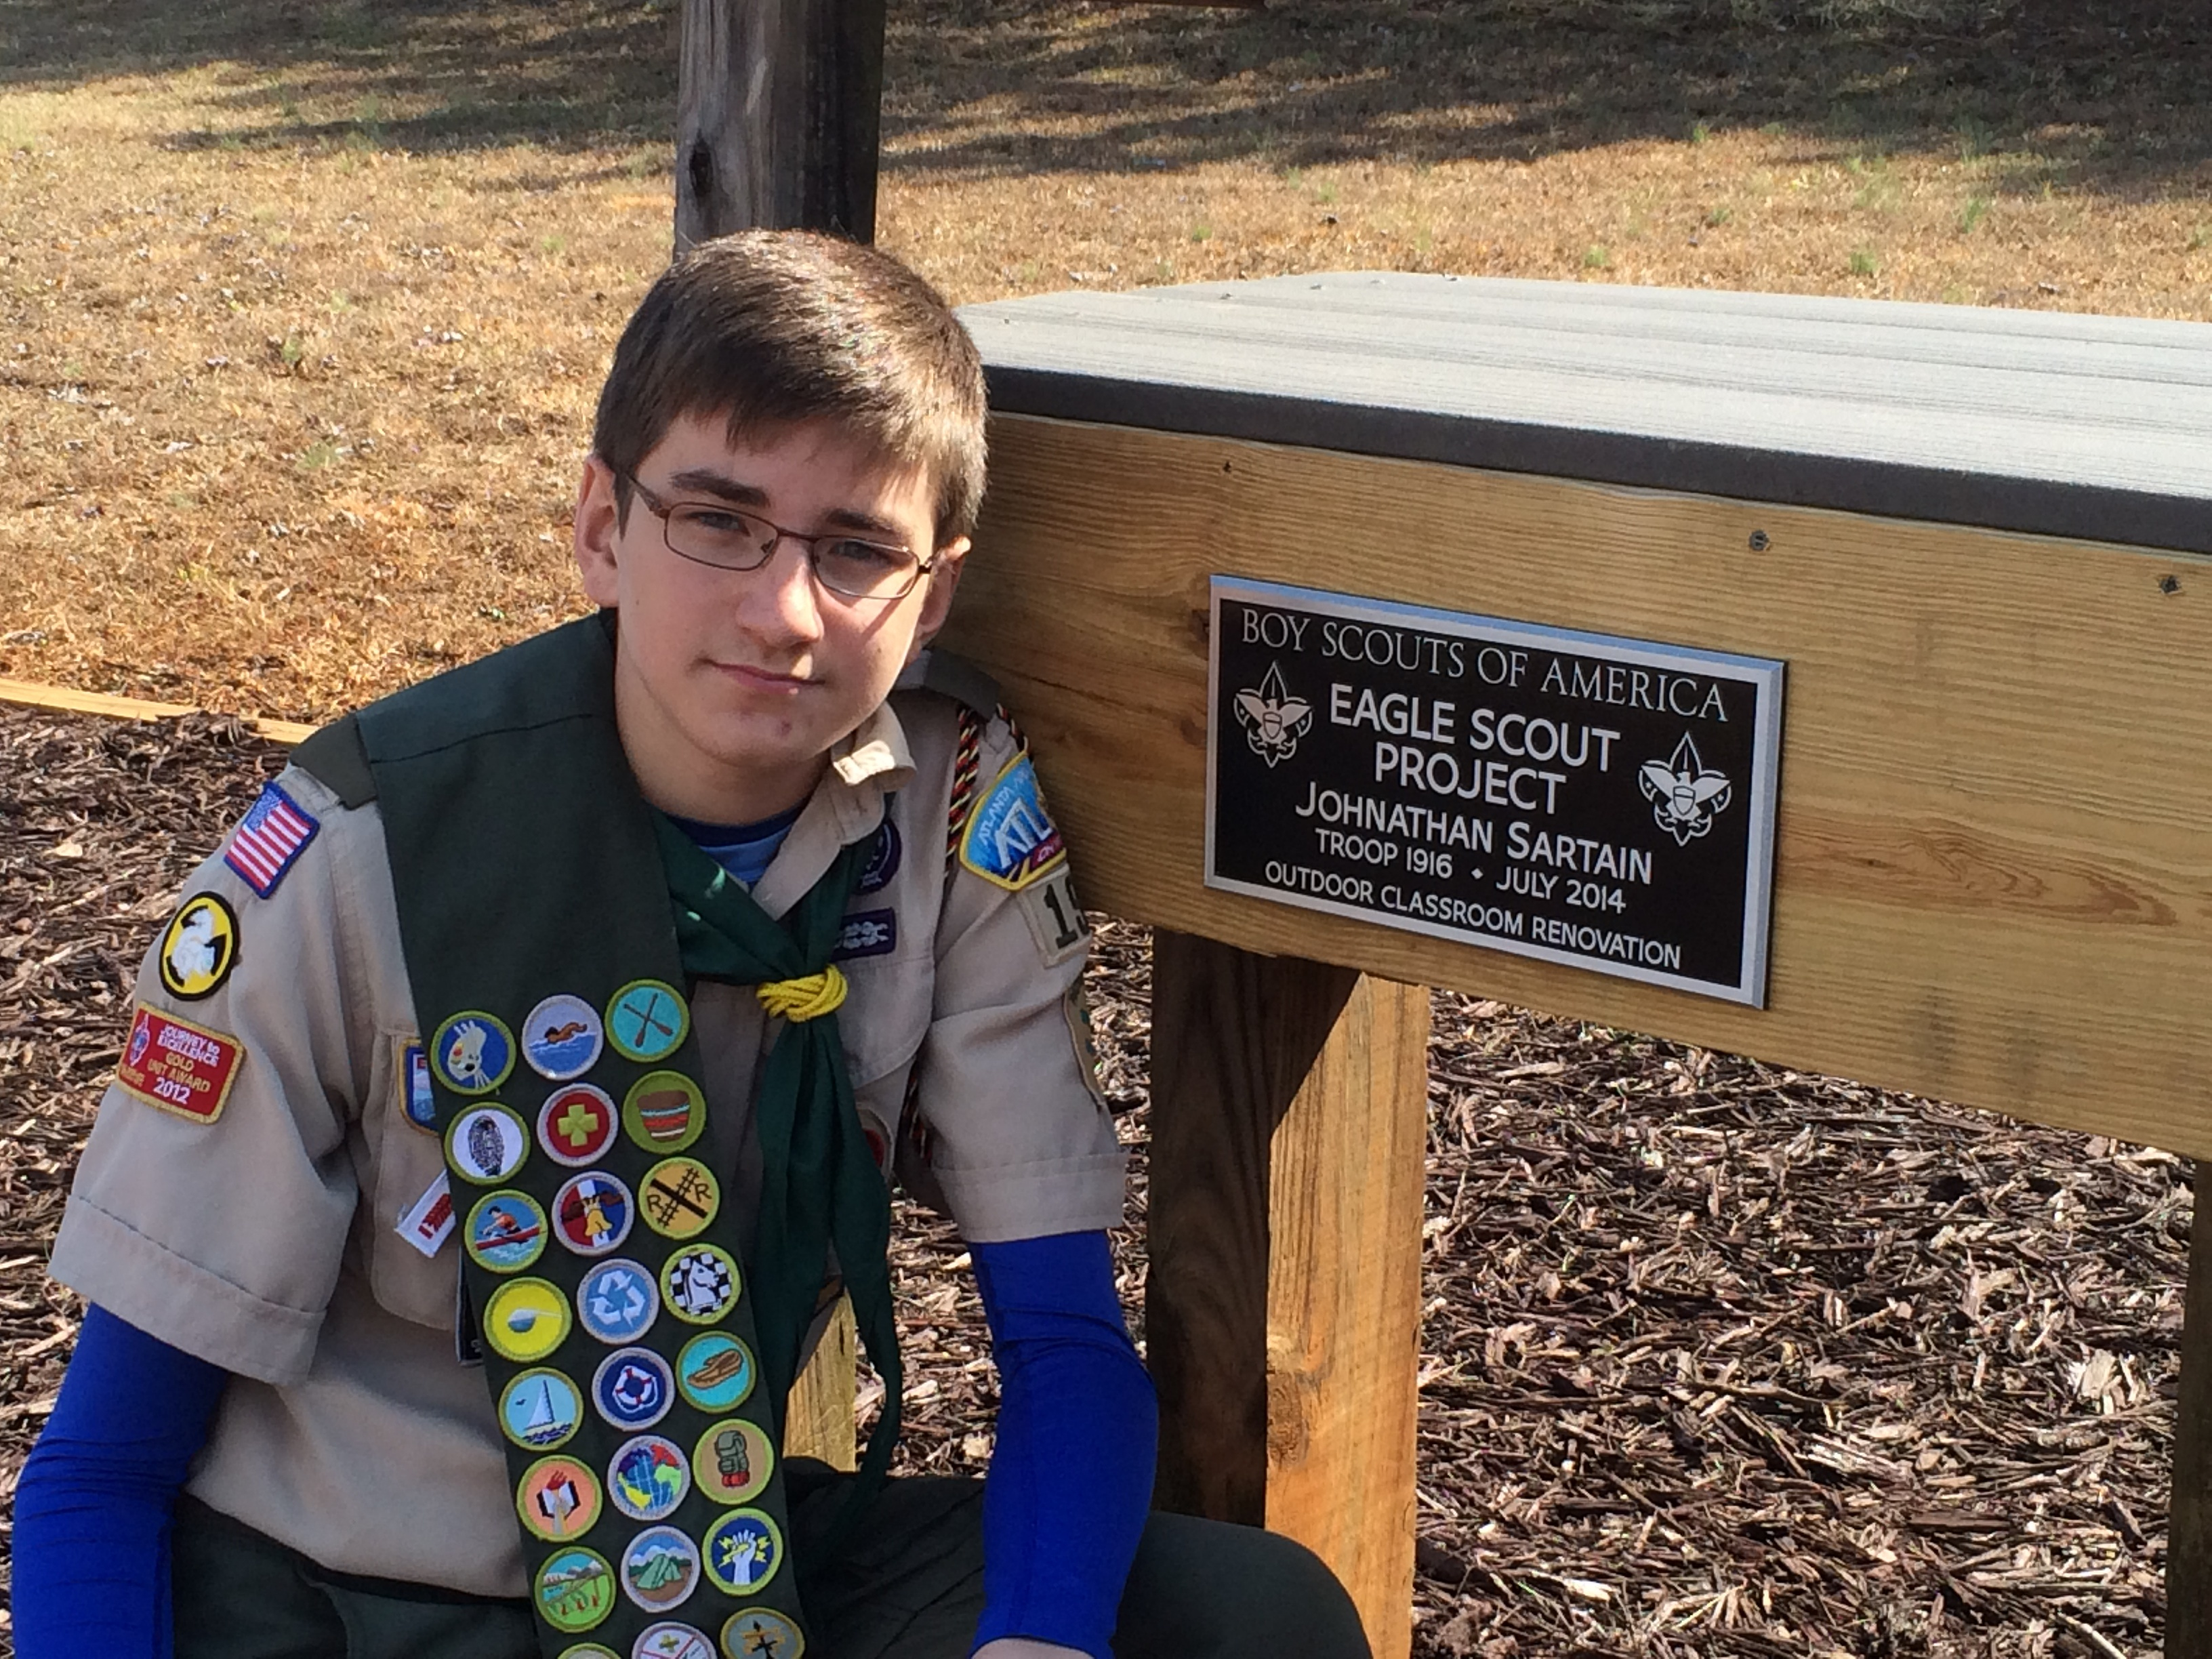 Eagle-Scout-Aluminum-Plaque-on-Wall